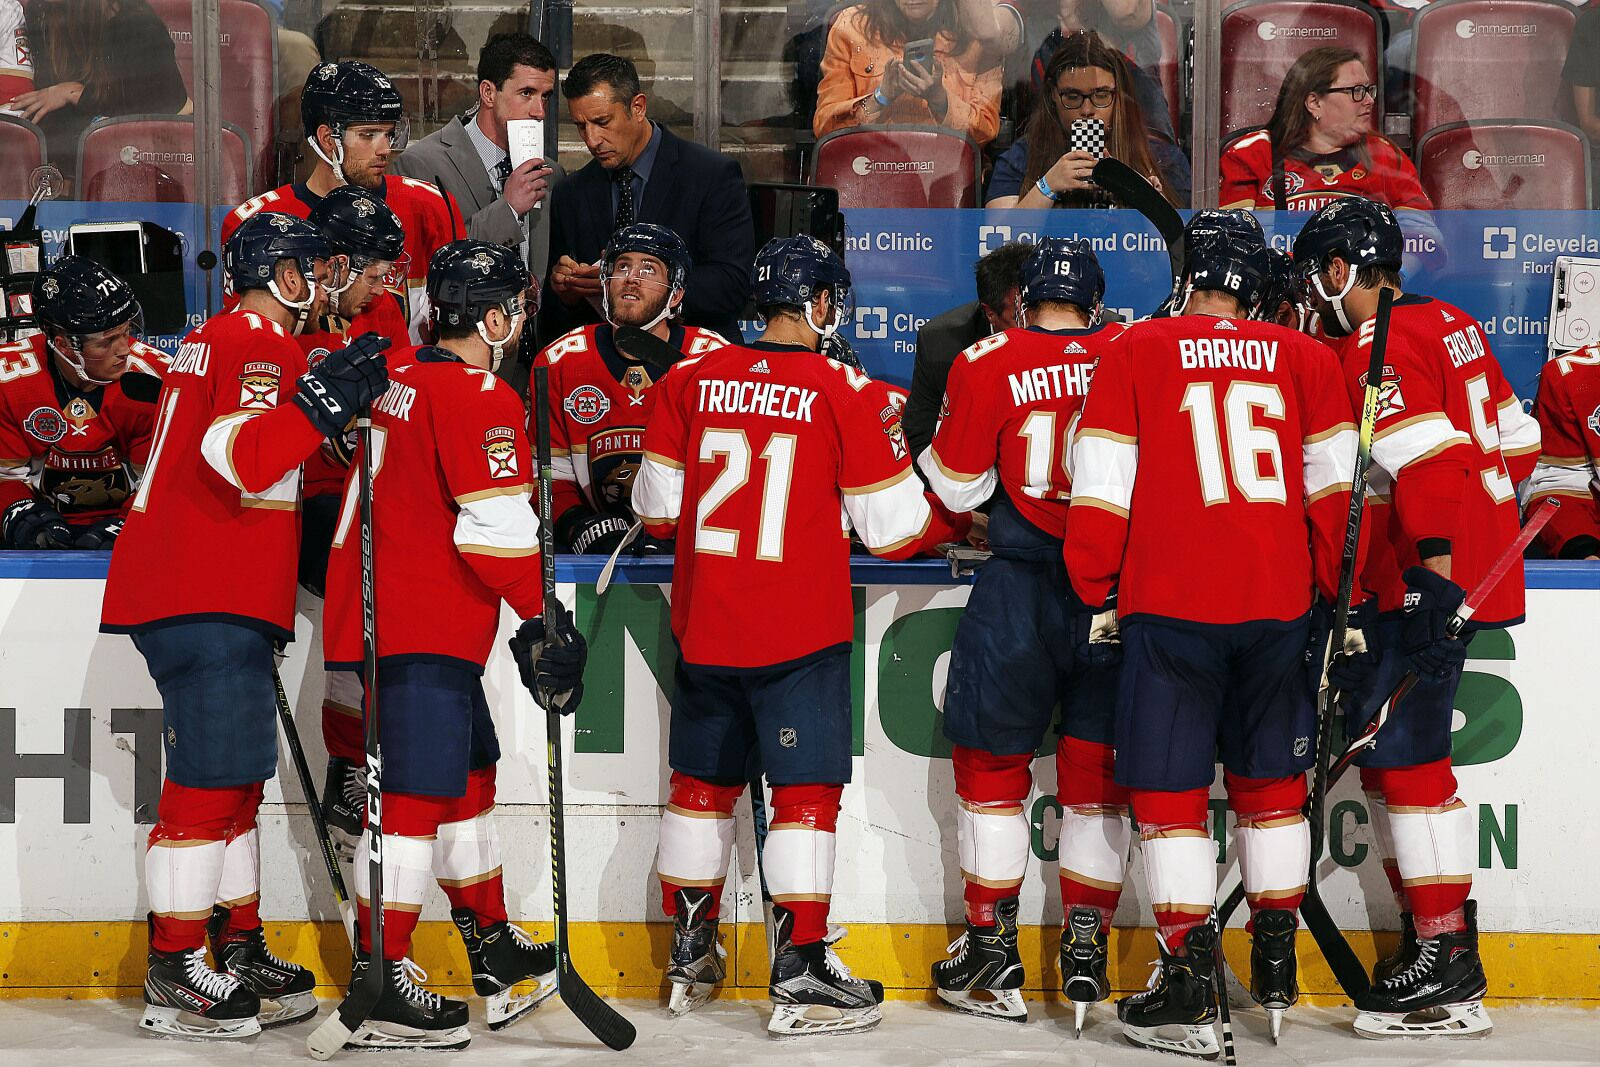 dcf355e55cb Florida Panthers  Three Players That Could Leave This Offseason